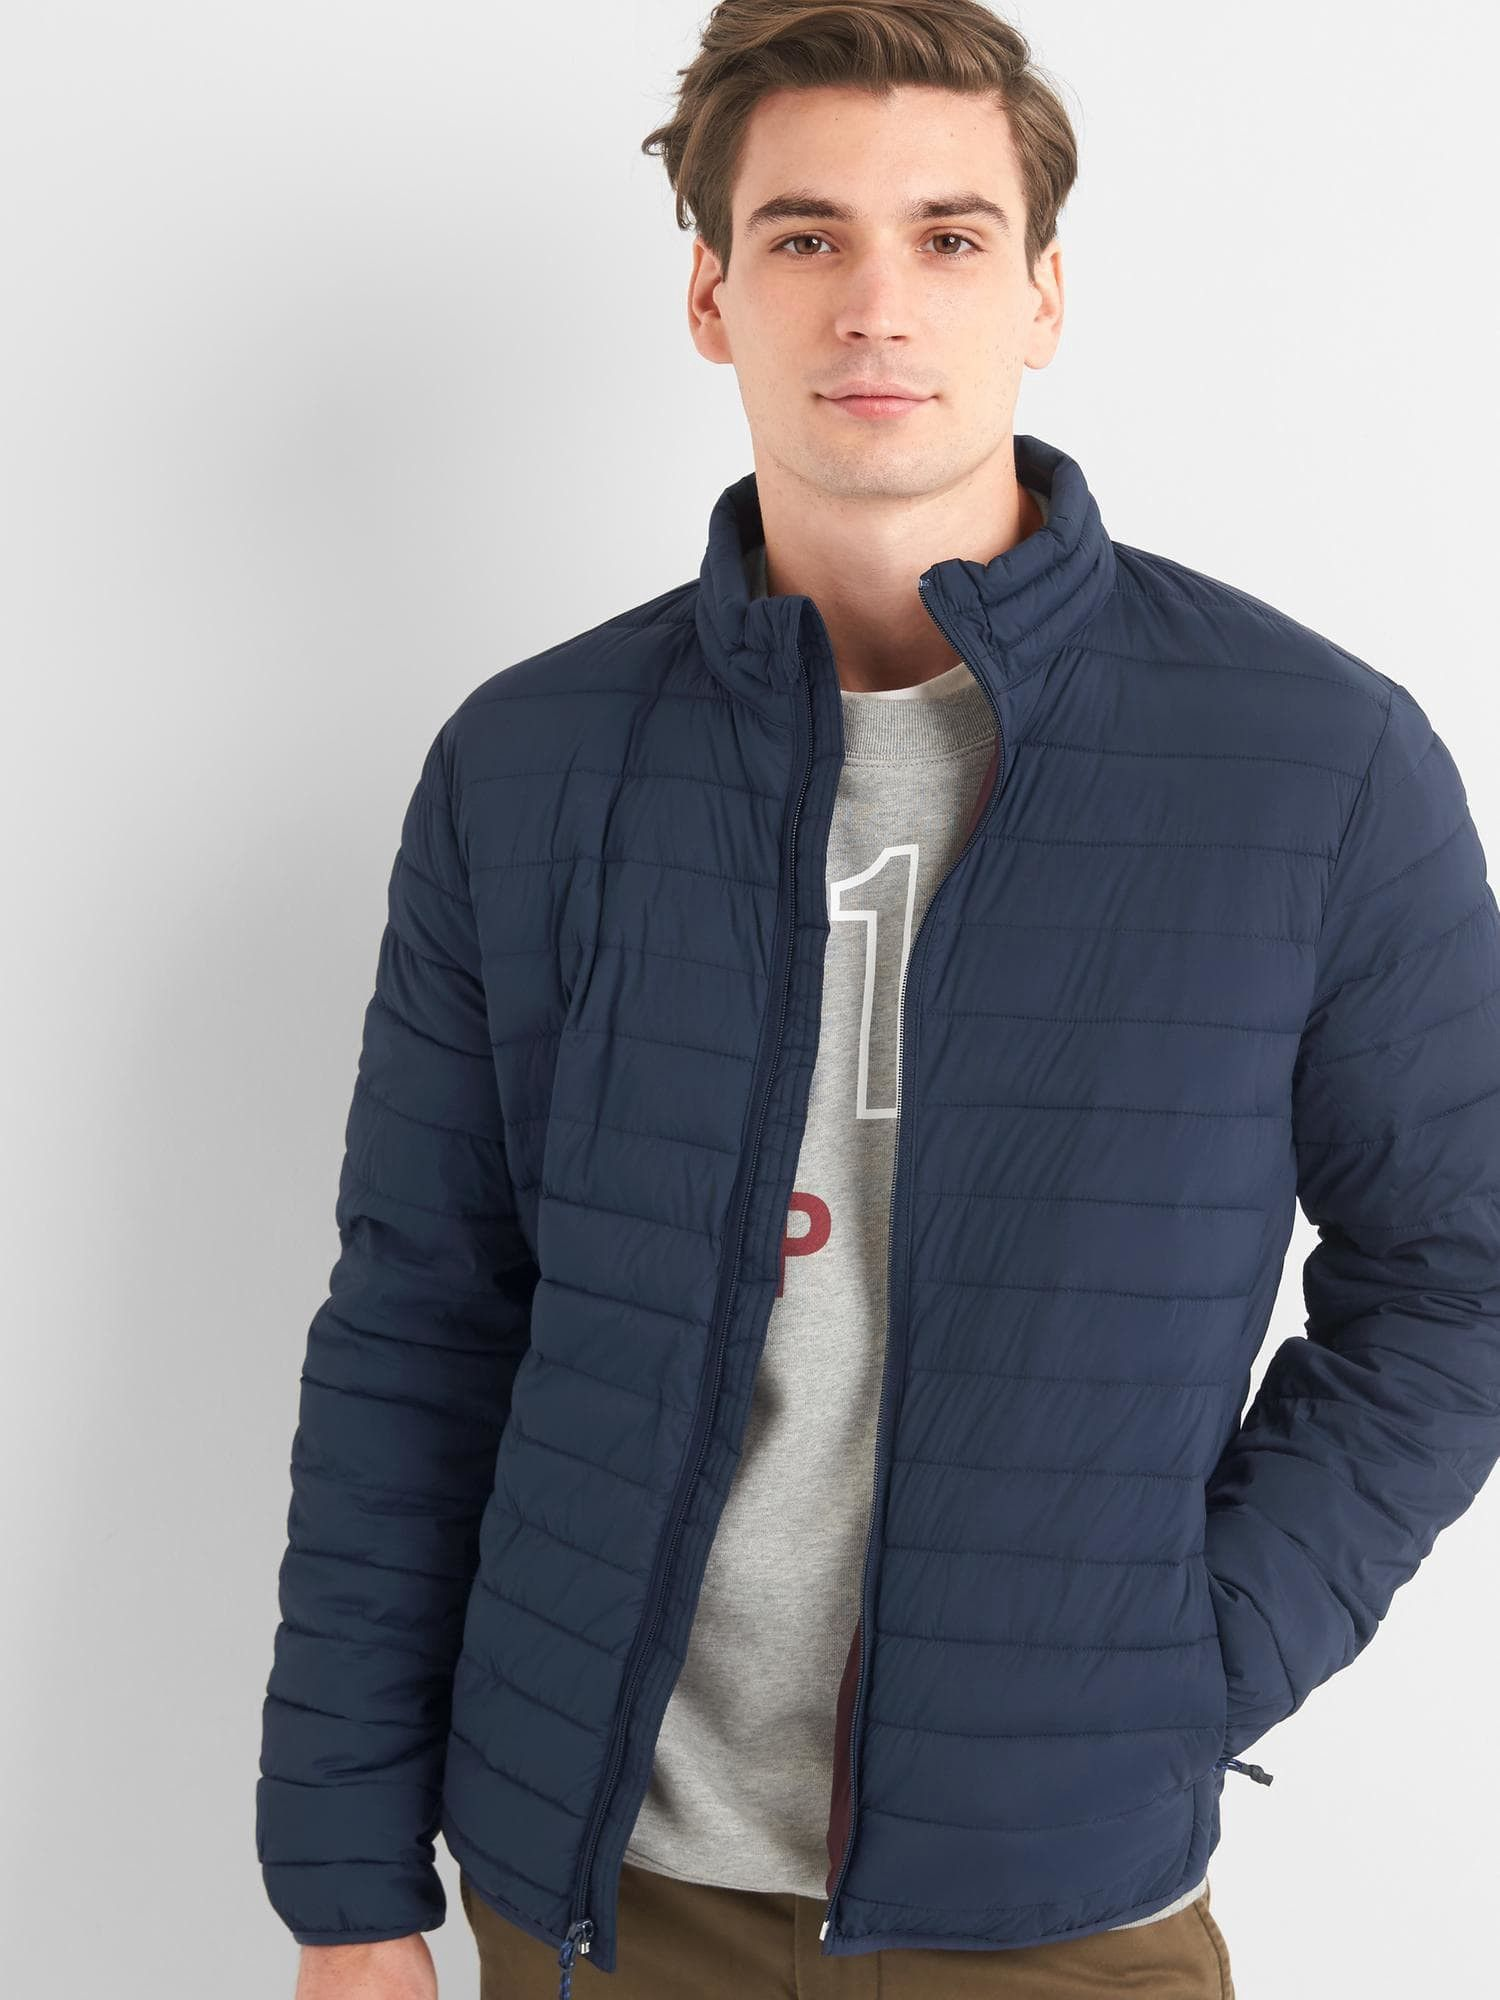 Pin By Joe Arroyo S On Coisas Para Comprar Winter Outfits Men Men S Coats And Jackets Mens Outfits [ 2000 x 1500 Pixel ]